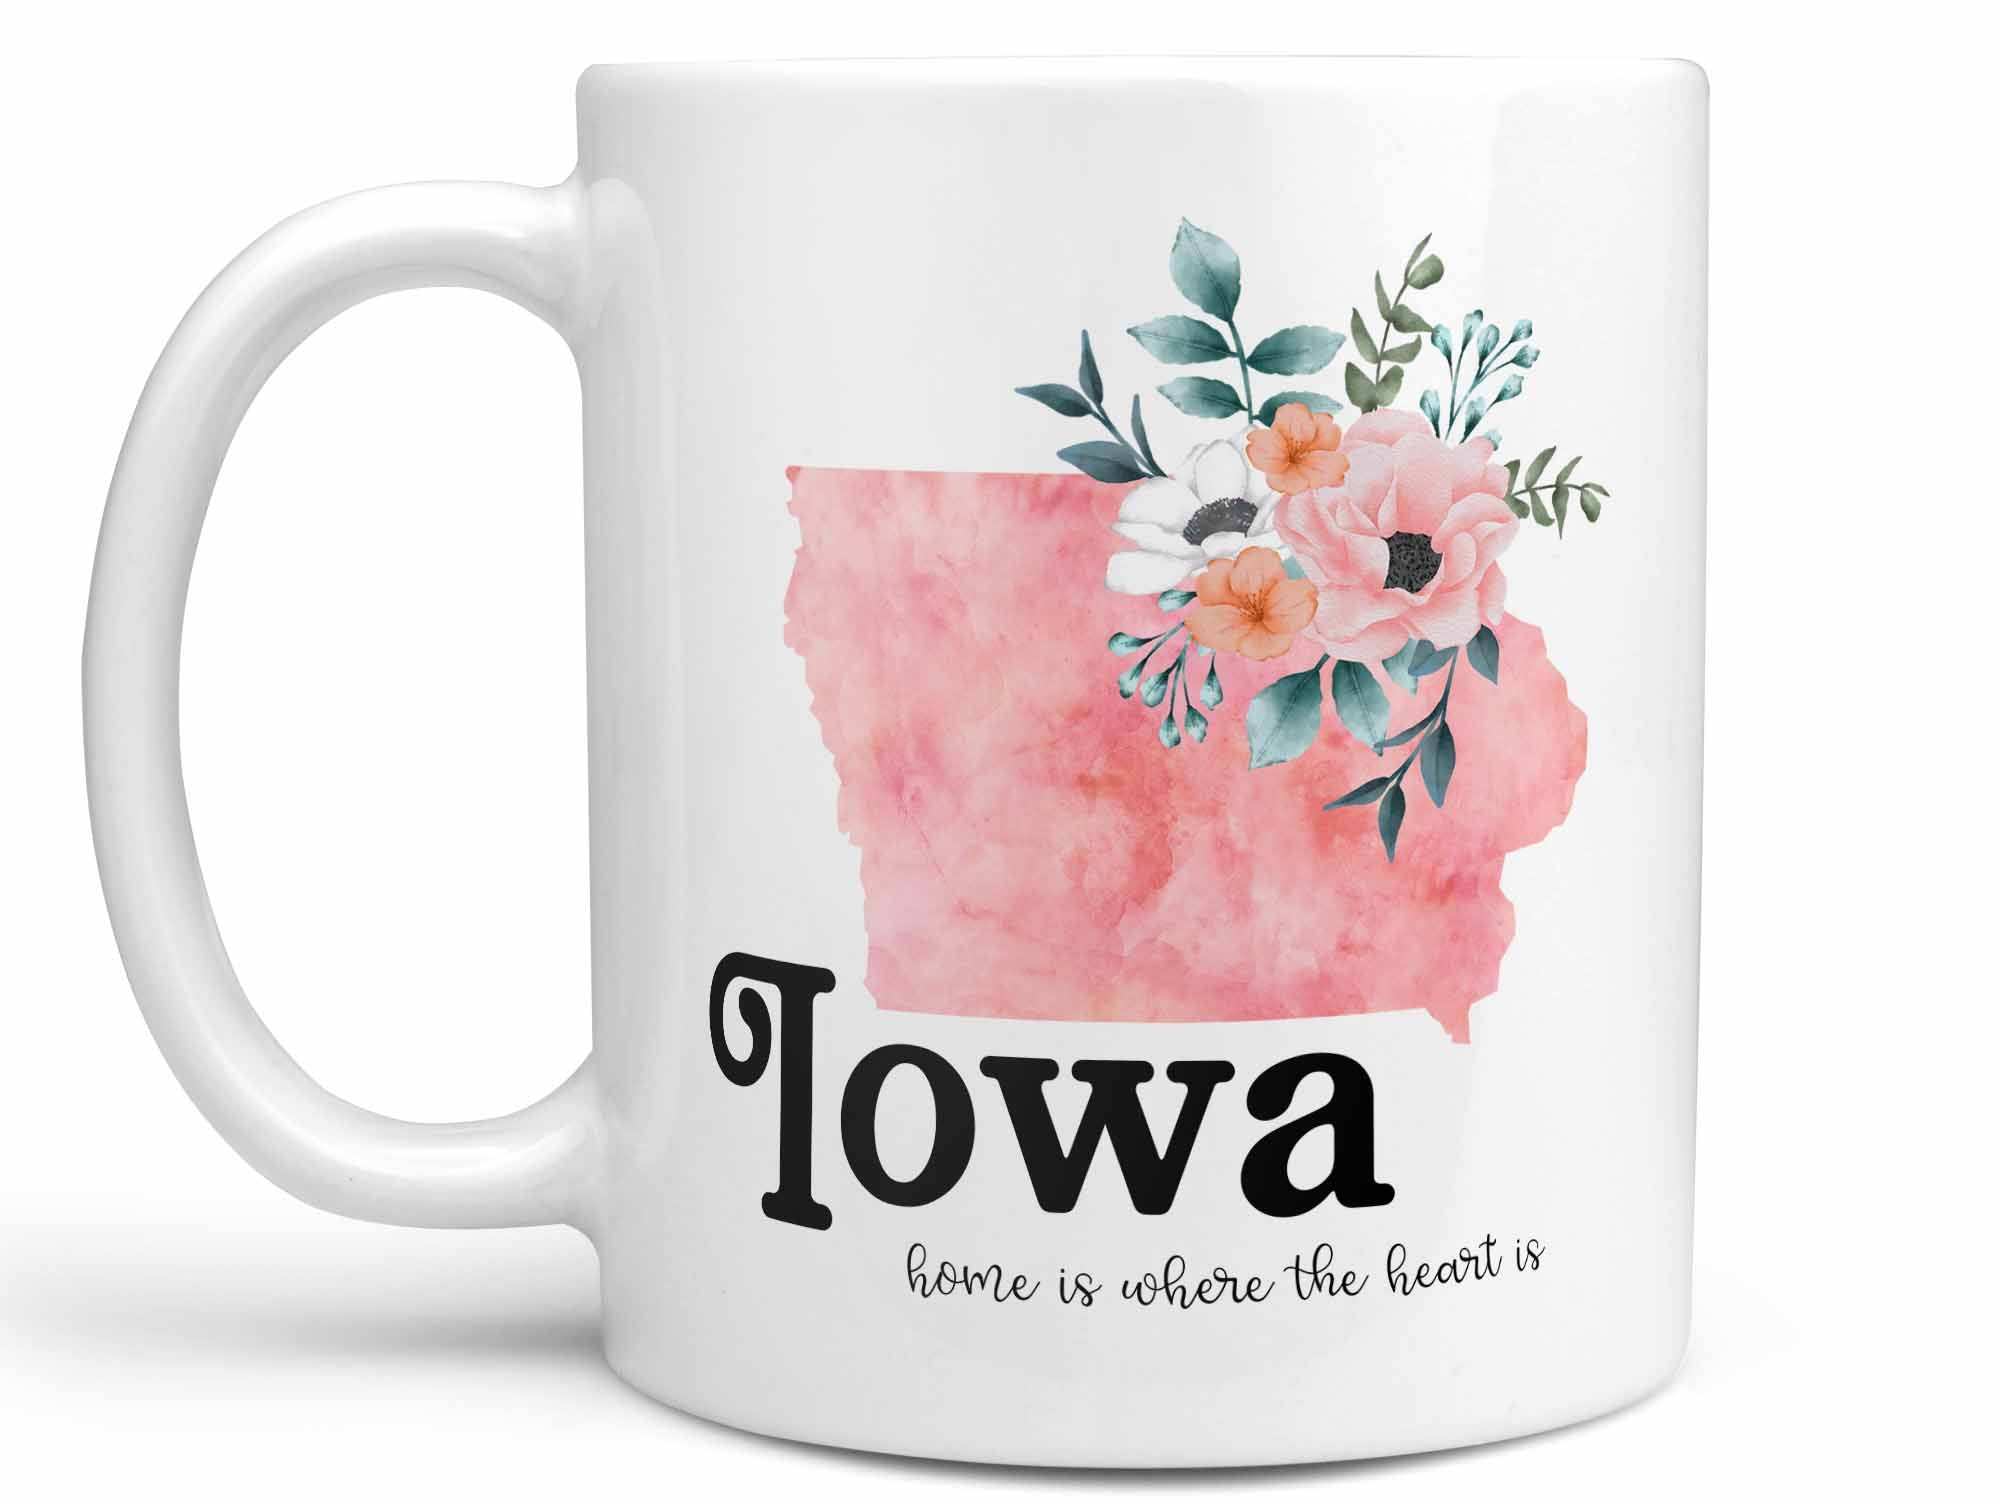 Iowa Home Coffee Mug,Coffee Mugs Never Lie,Coffee Mug